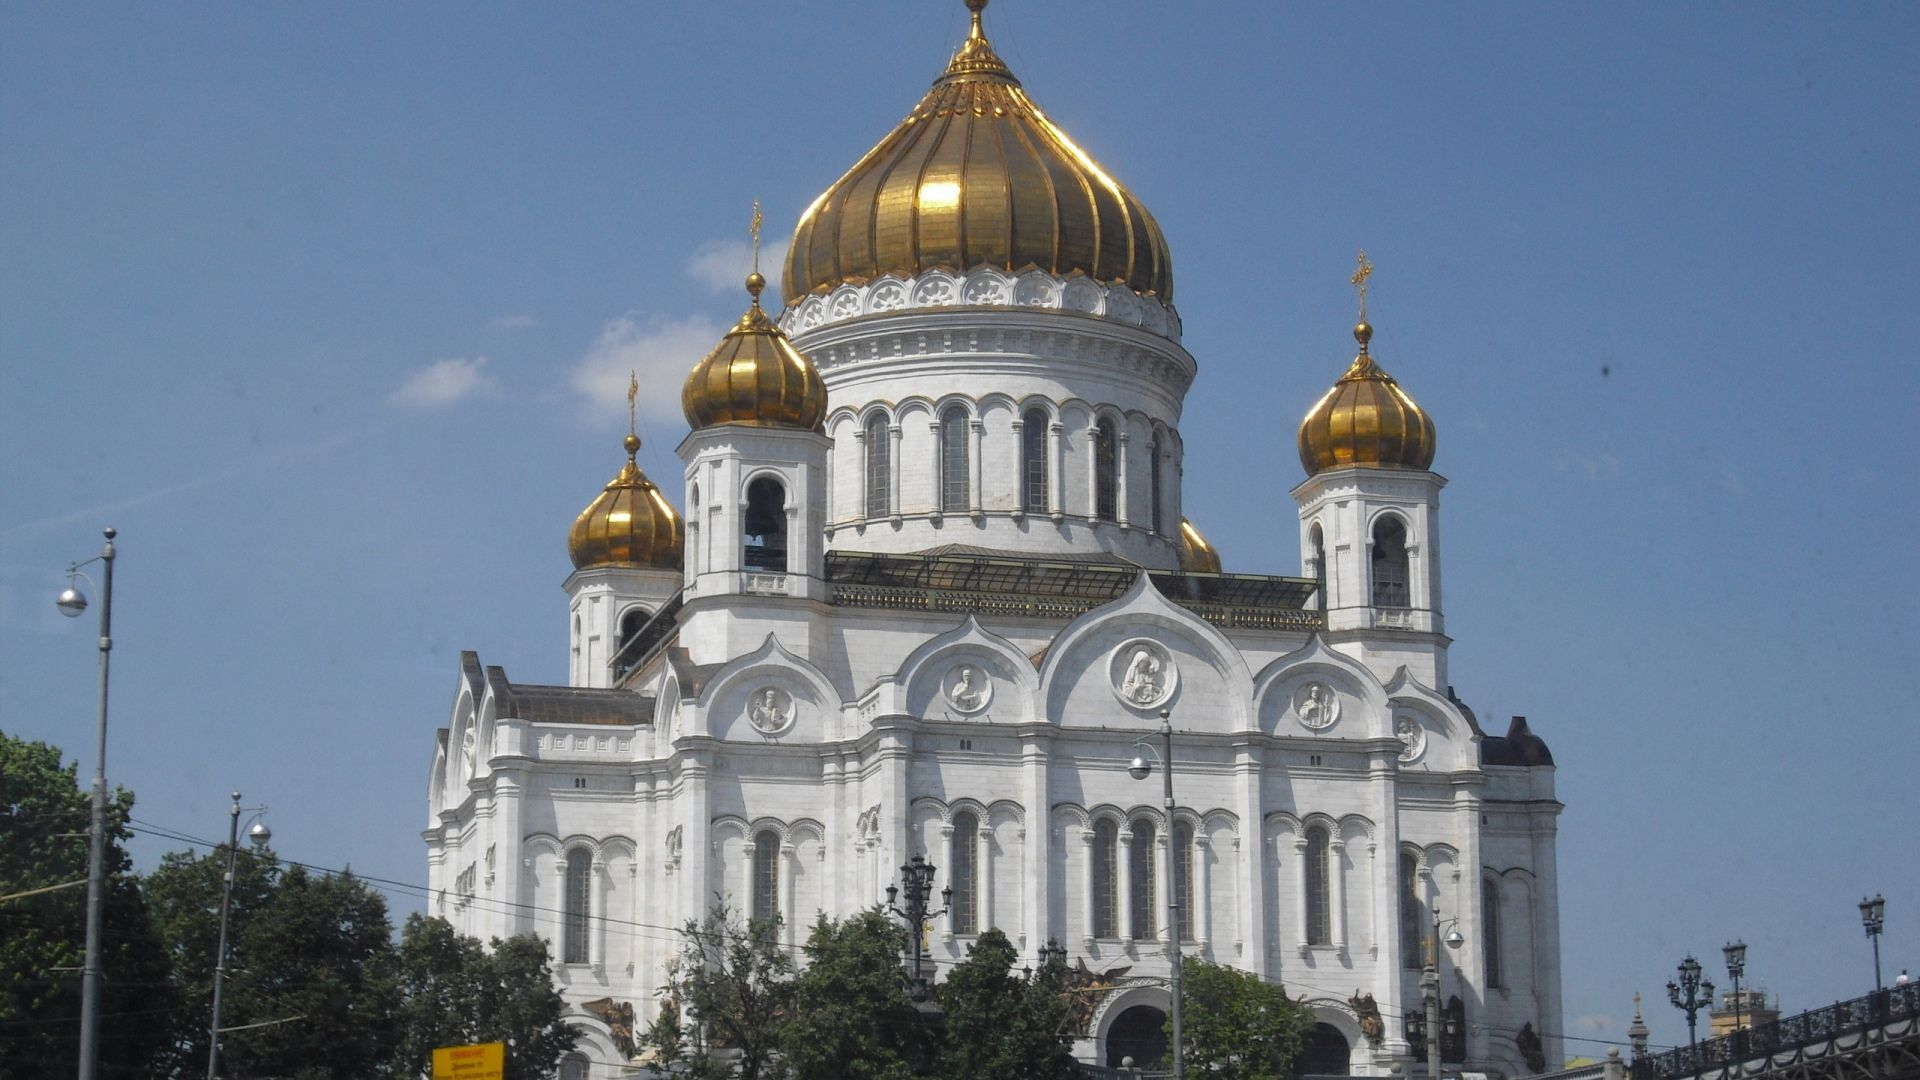 cathedral of christ the saviour, moscow, white stone - http://www.wallpapers4u.org/cathedral-of-christ-the-saviour-moscow-white-stone/